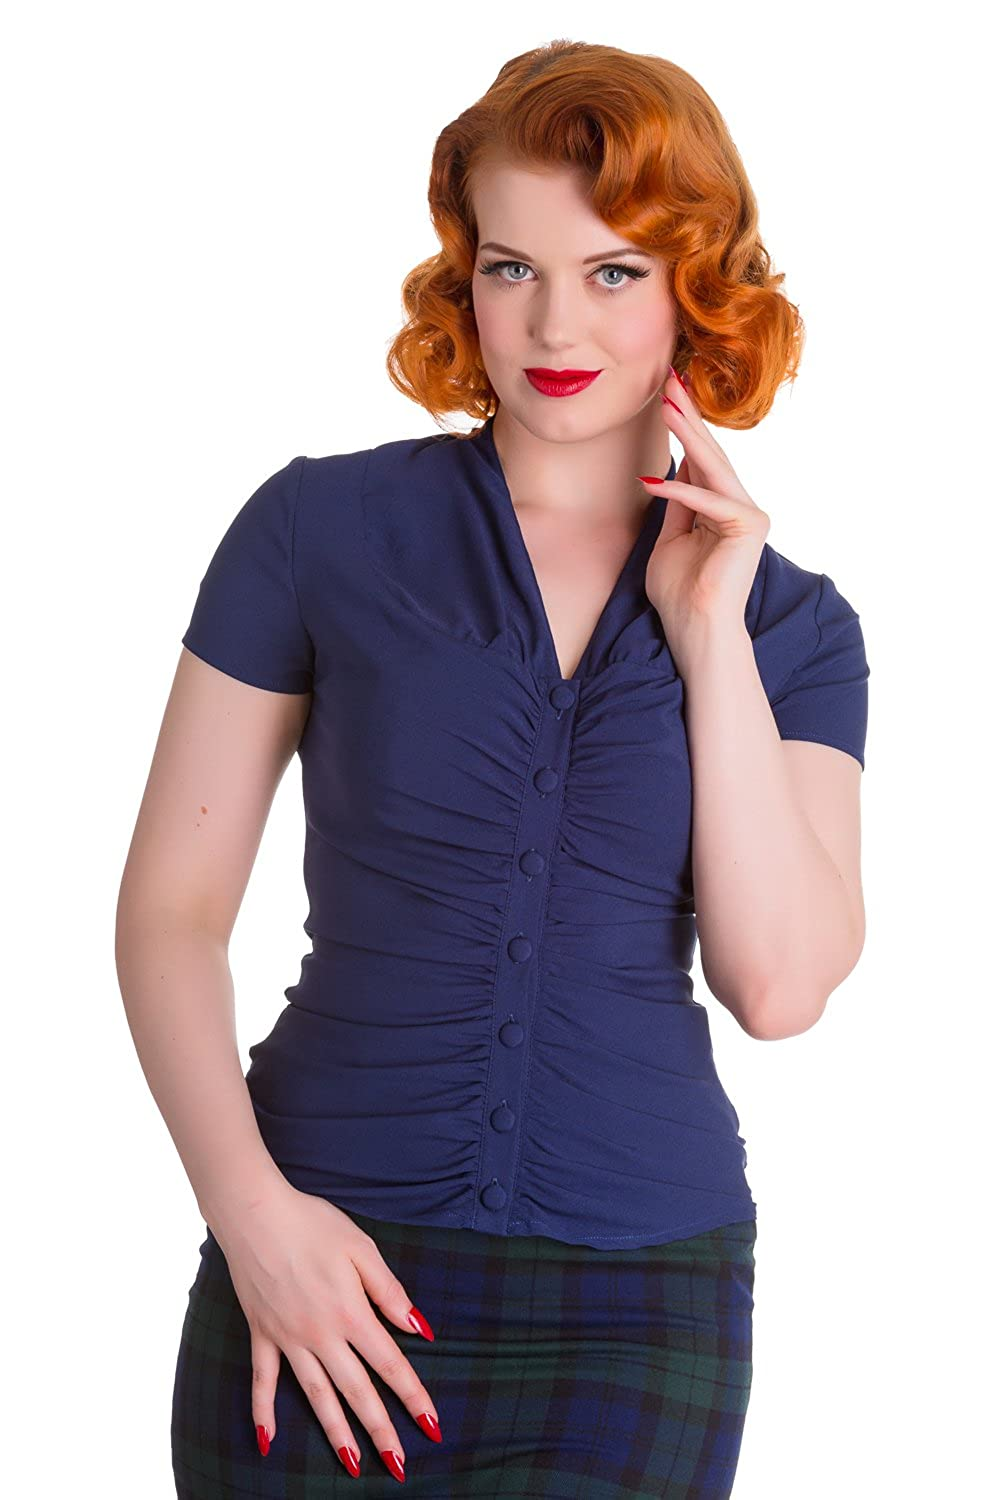 1940s Blouses, Shirts and Tops Fashion History Rosina40s 50s Blouse Top Shirt $26.99 AT vintagedancer.com